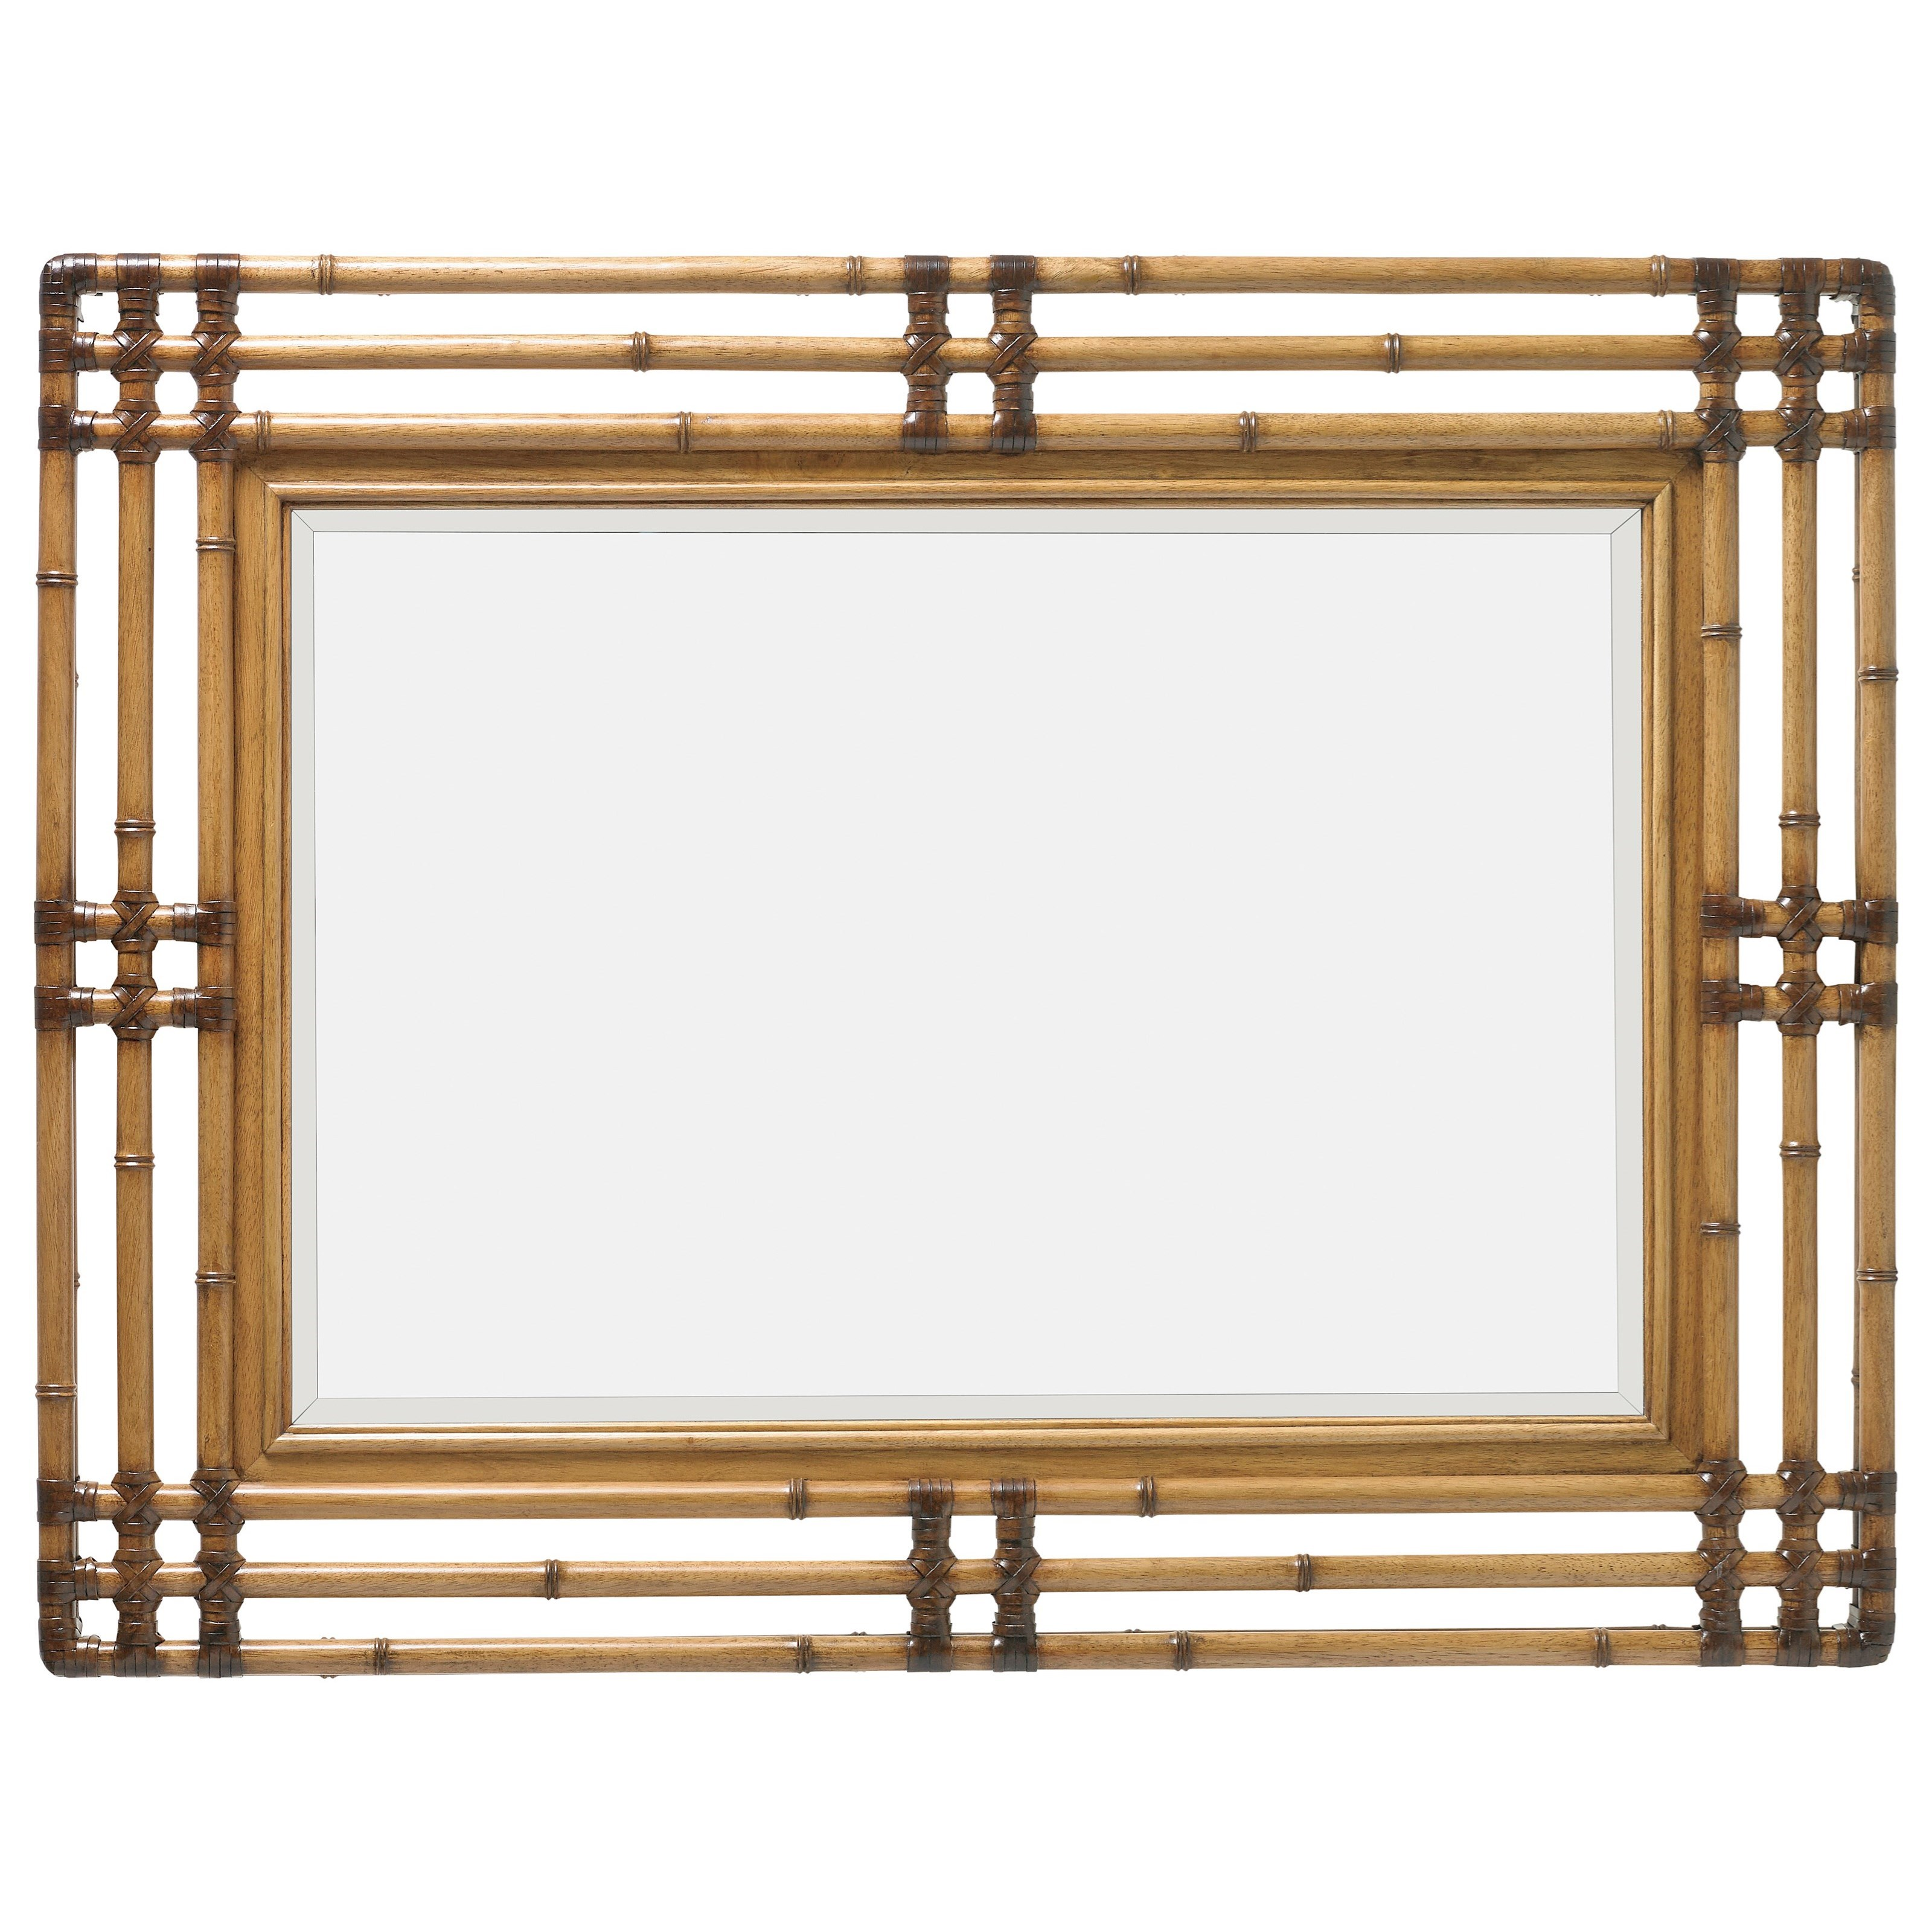 Tommy Bahama Home Twin Palms Savana Mirror - Item Number: 558-205